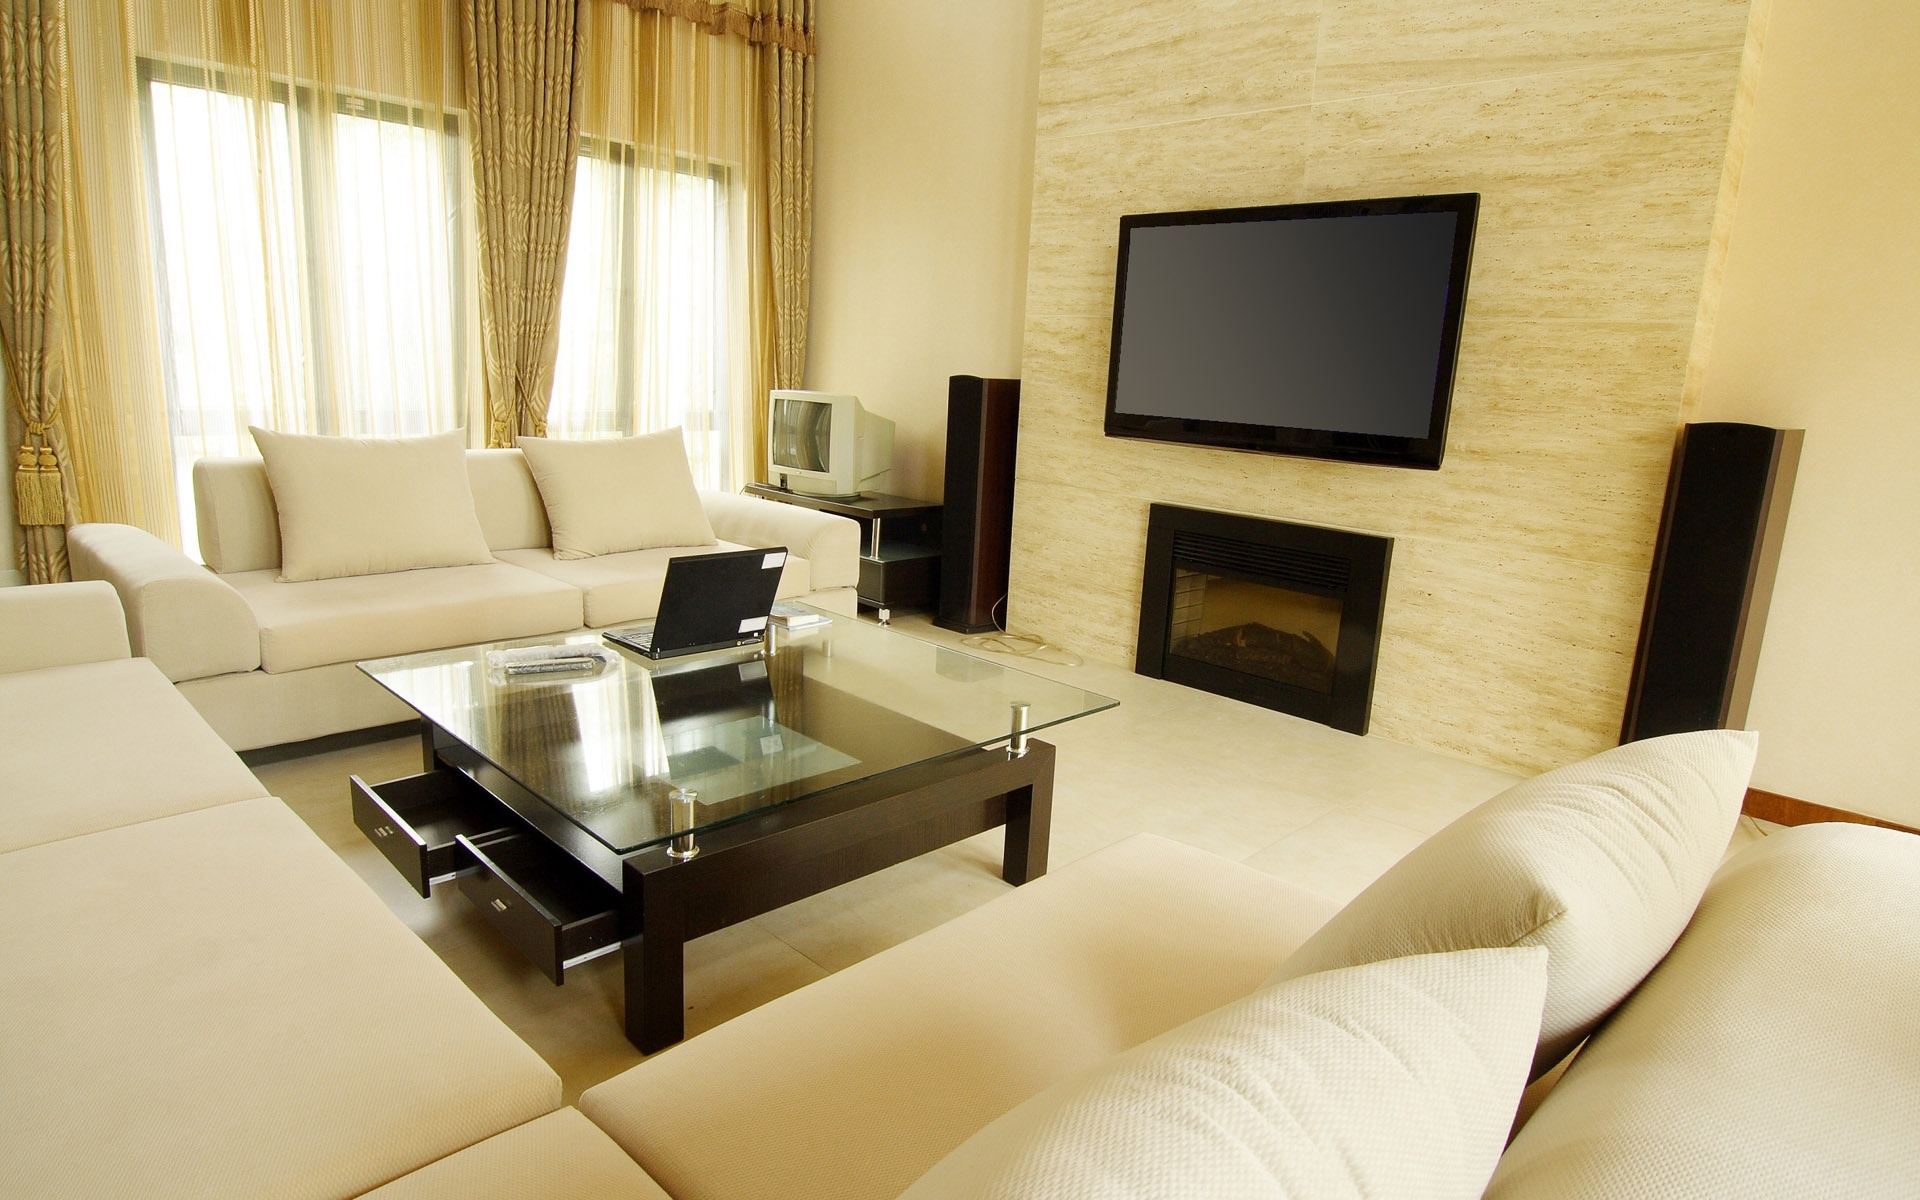 Top 5 tips when redecorating your living room for Redecorating living room